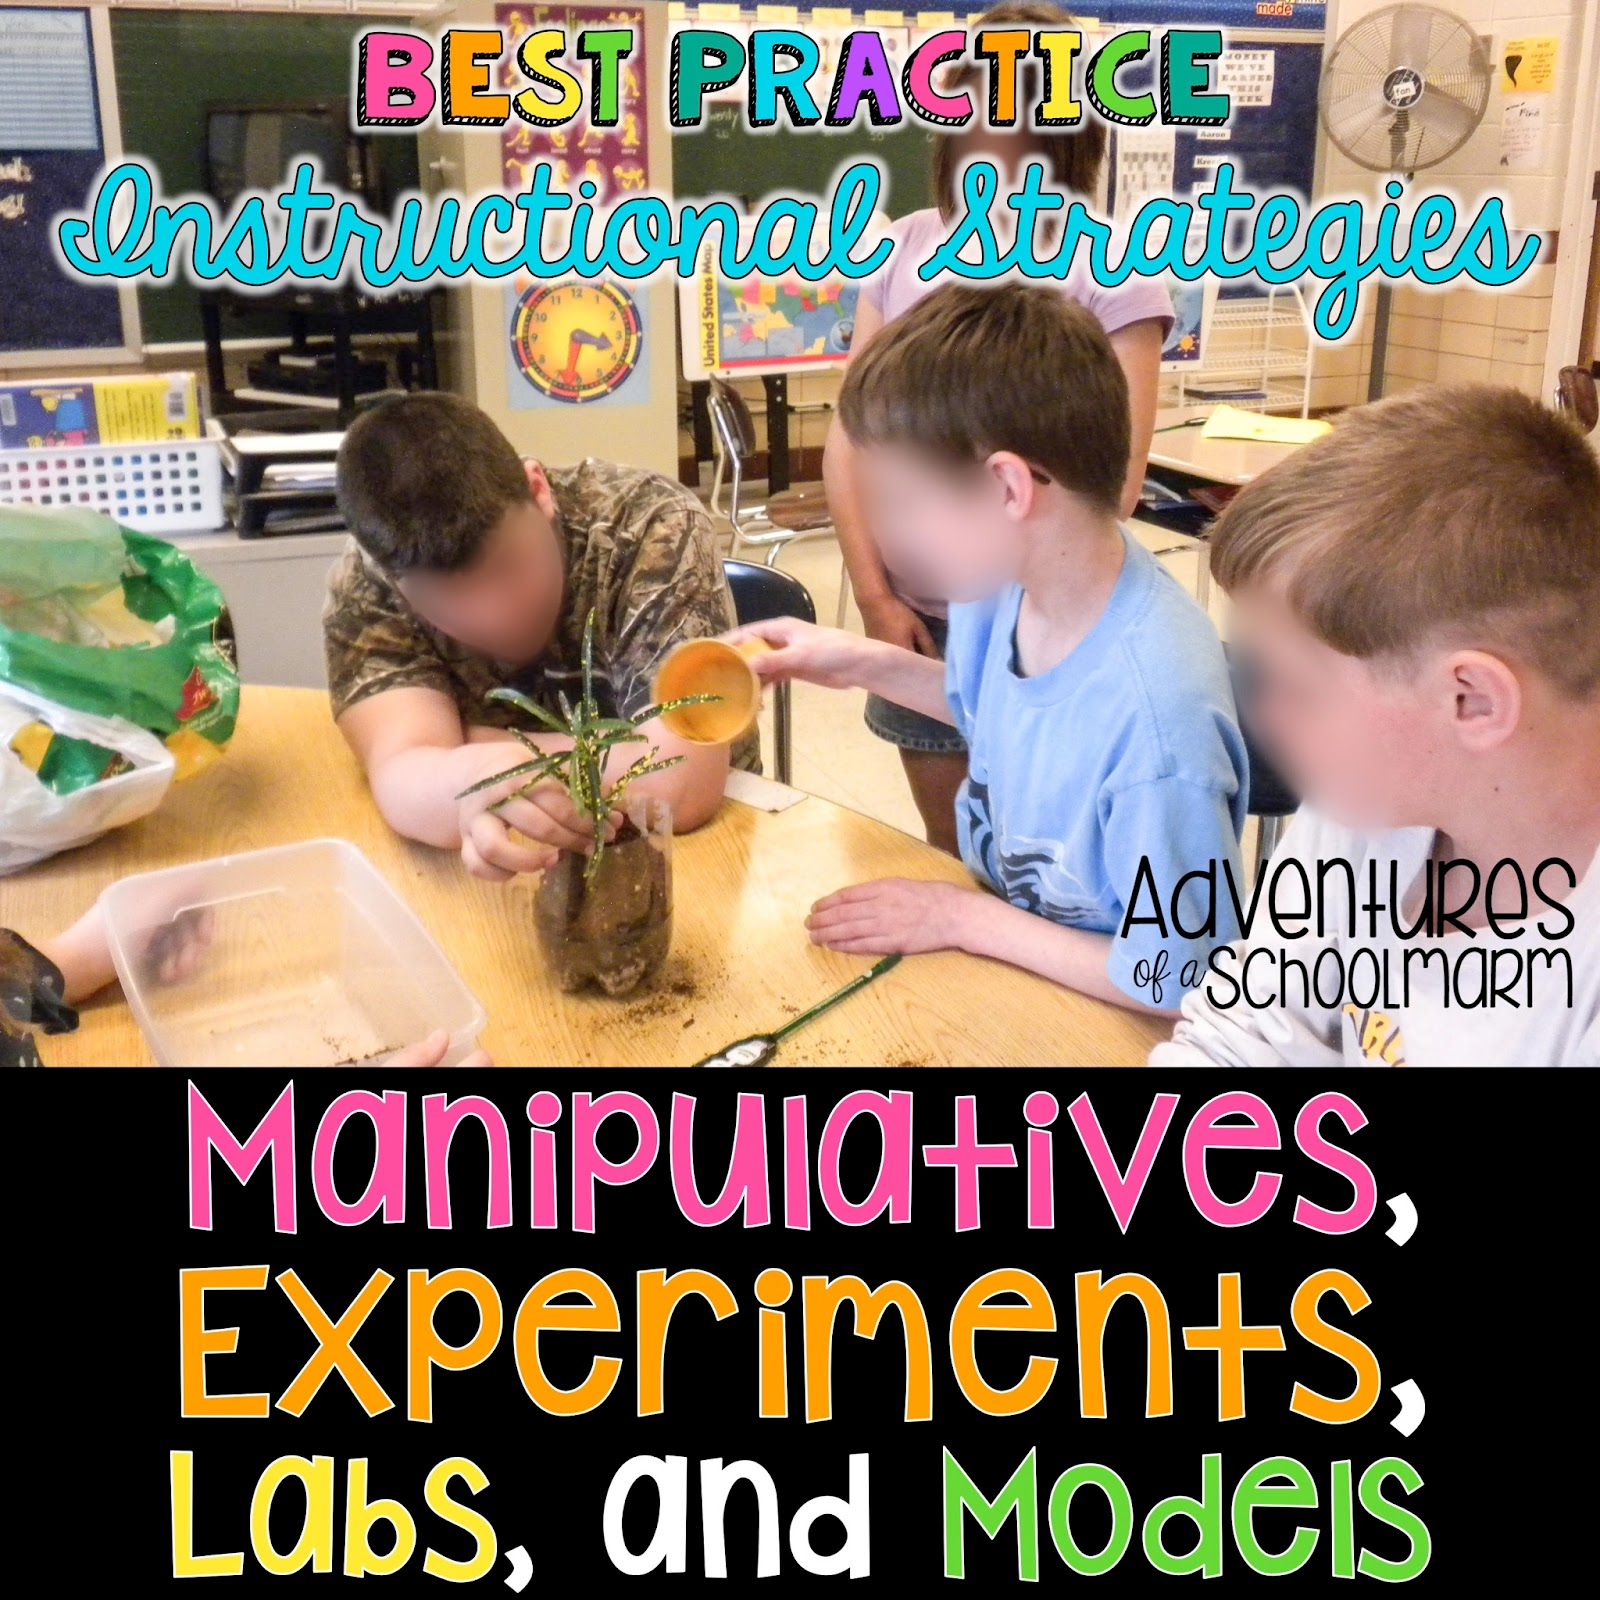 Worksheets Worksheets Don T Grow Dendrites worksheets dont grow dendrites manipulatives experiments labs i am linking up with deanna jump for our best practice book study on by marcia tate super